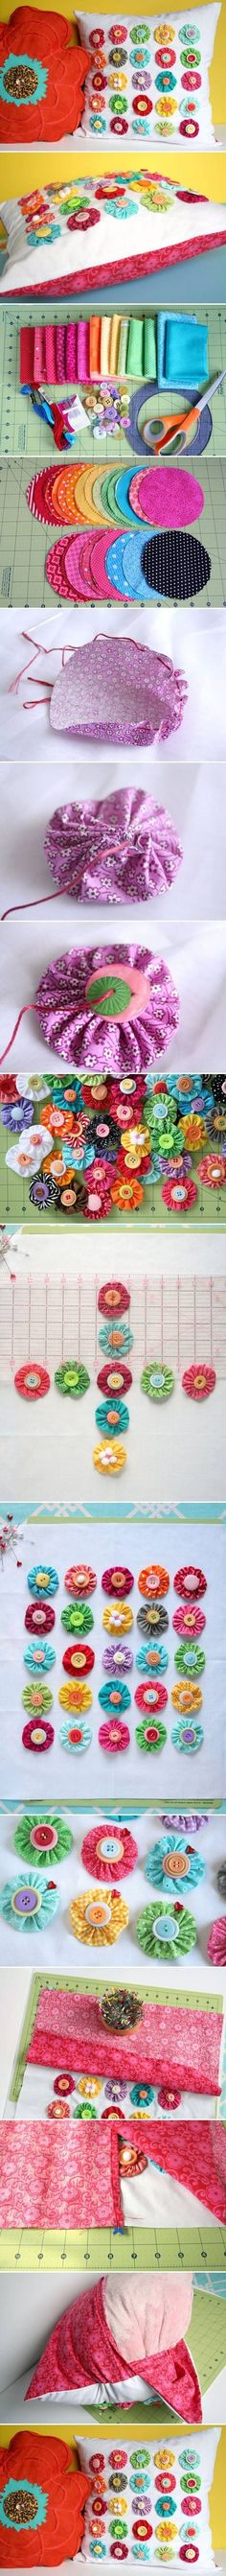 DIY Button Pillow Decorations Pictures, Photos, and Images for Facebook, Tumblr, Pinterest, and Twitter